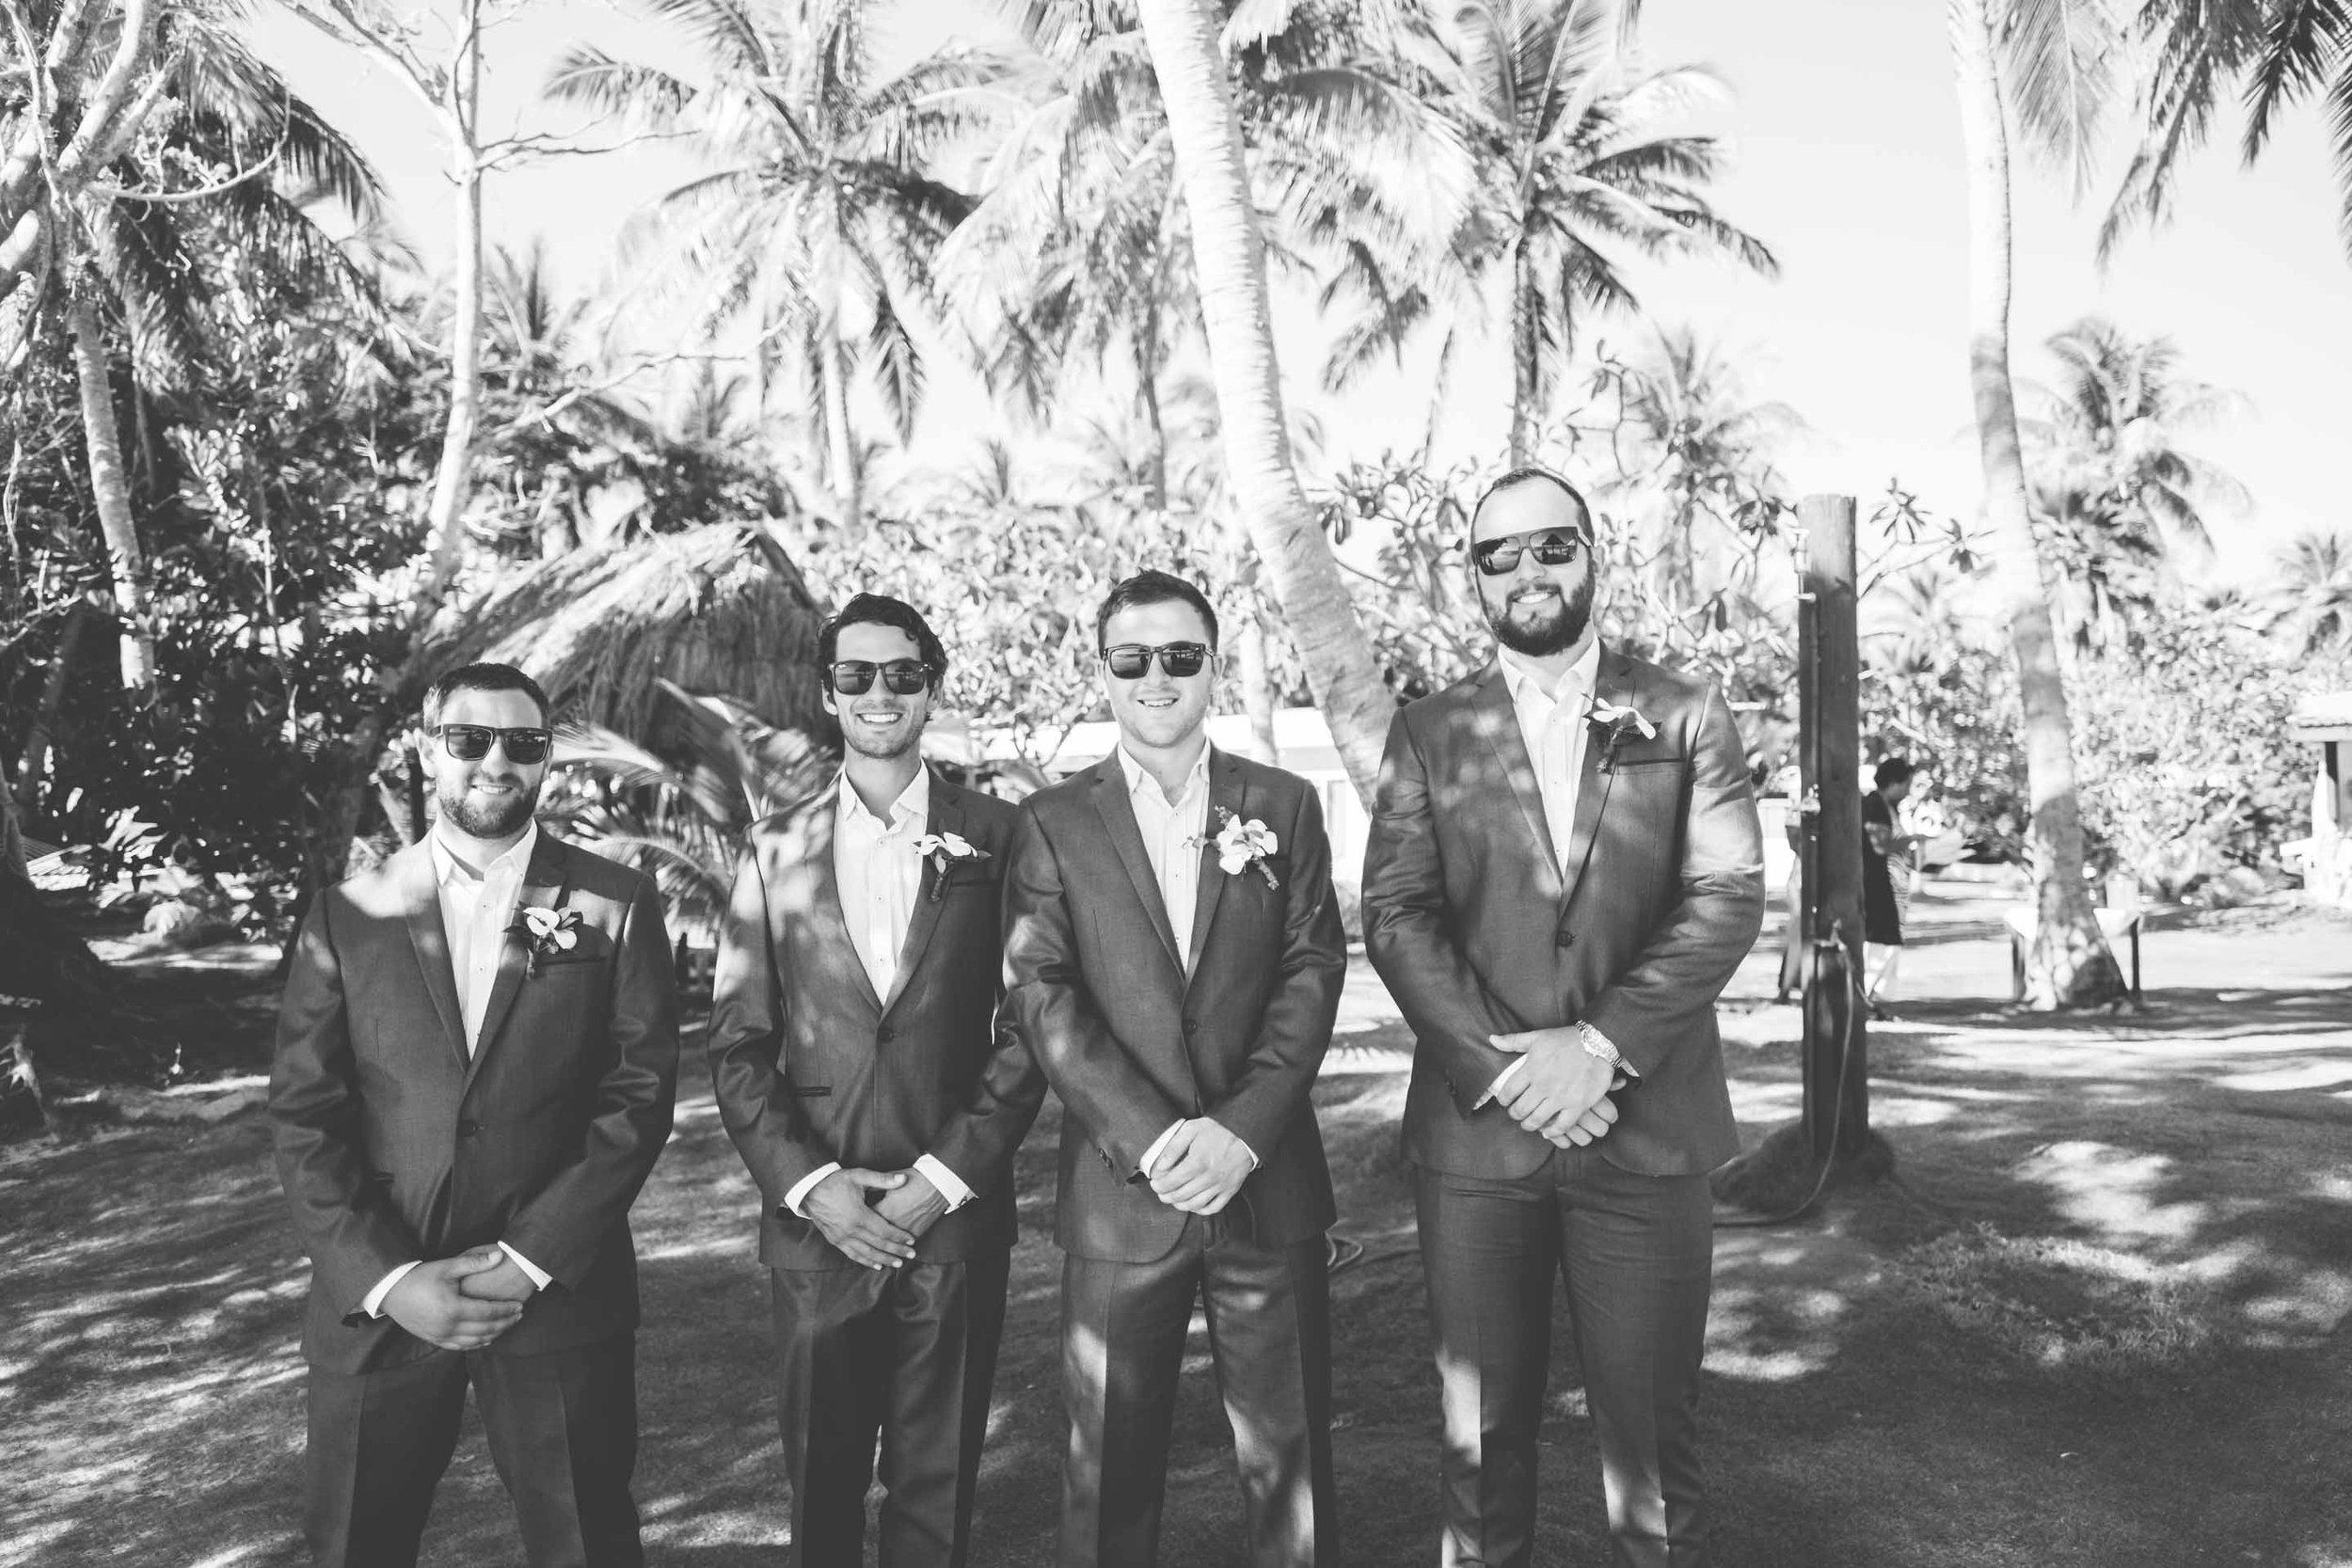 the groom with his groomsmen waiting at the ceremony venue